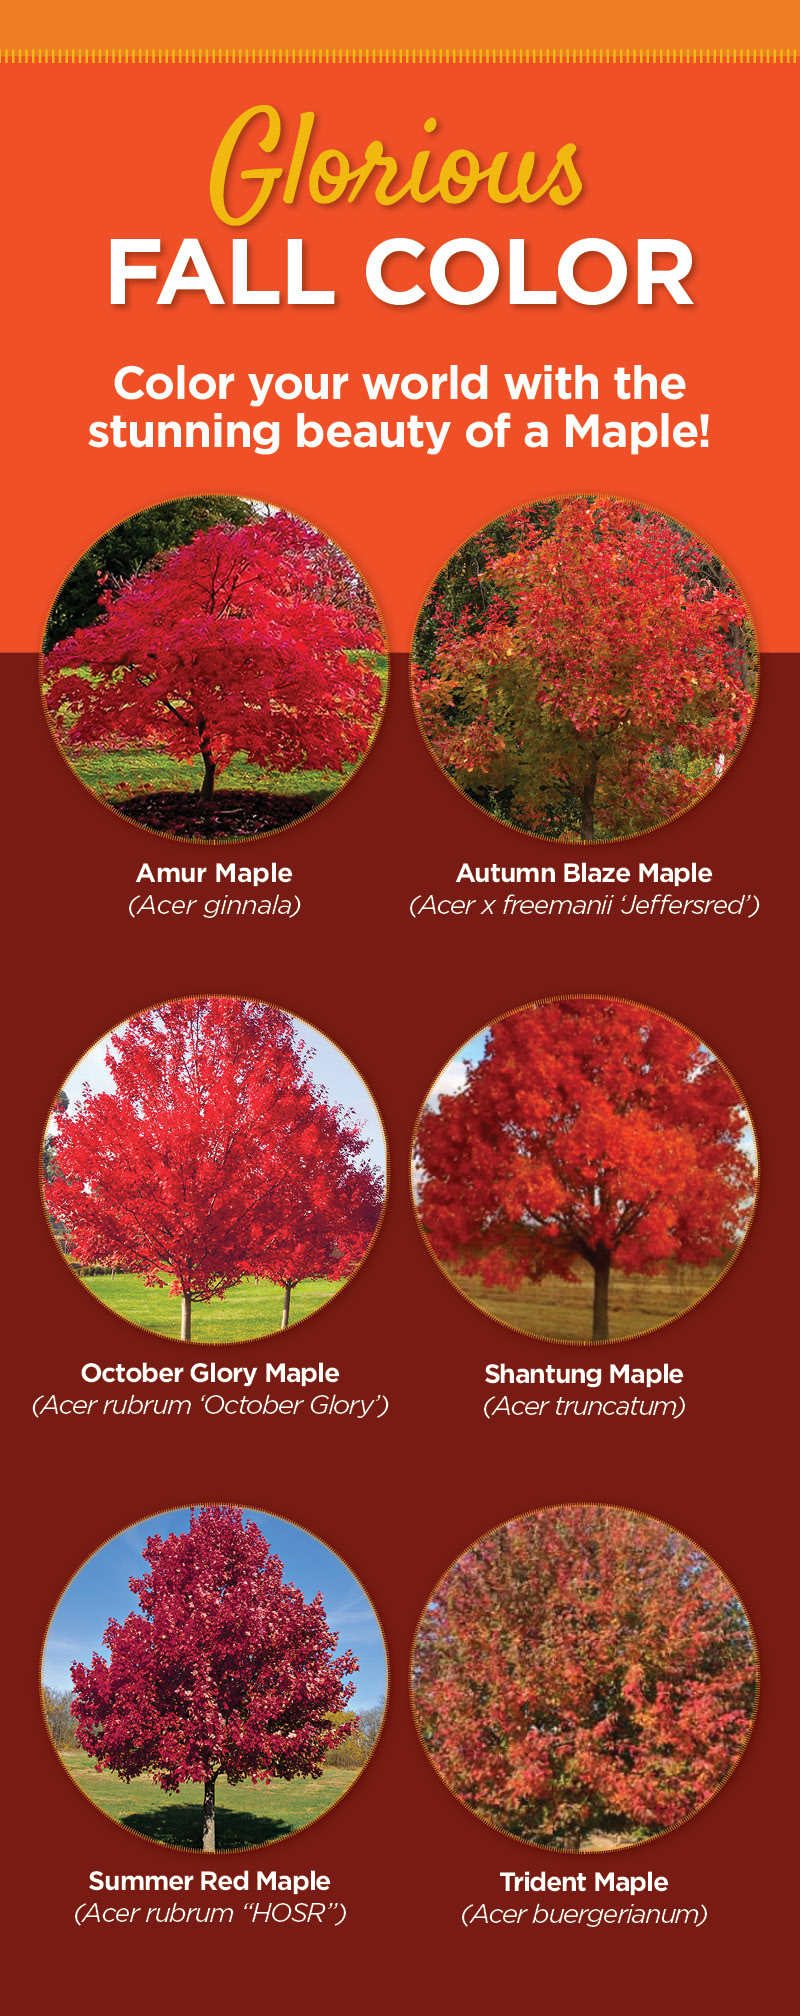 Magnificent Maple Trees | TLC Garden